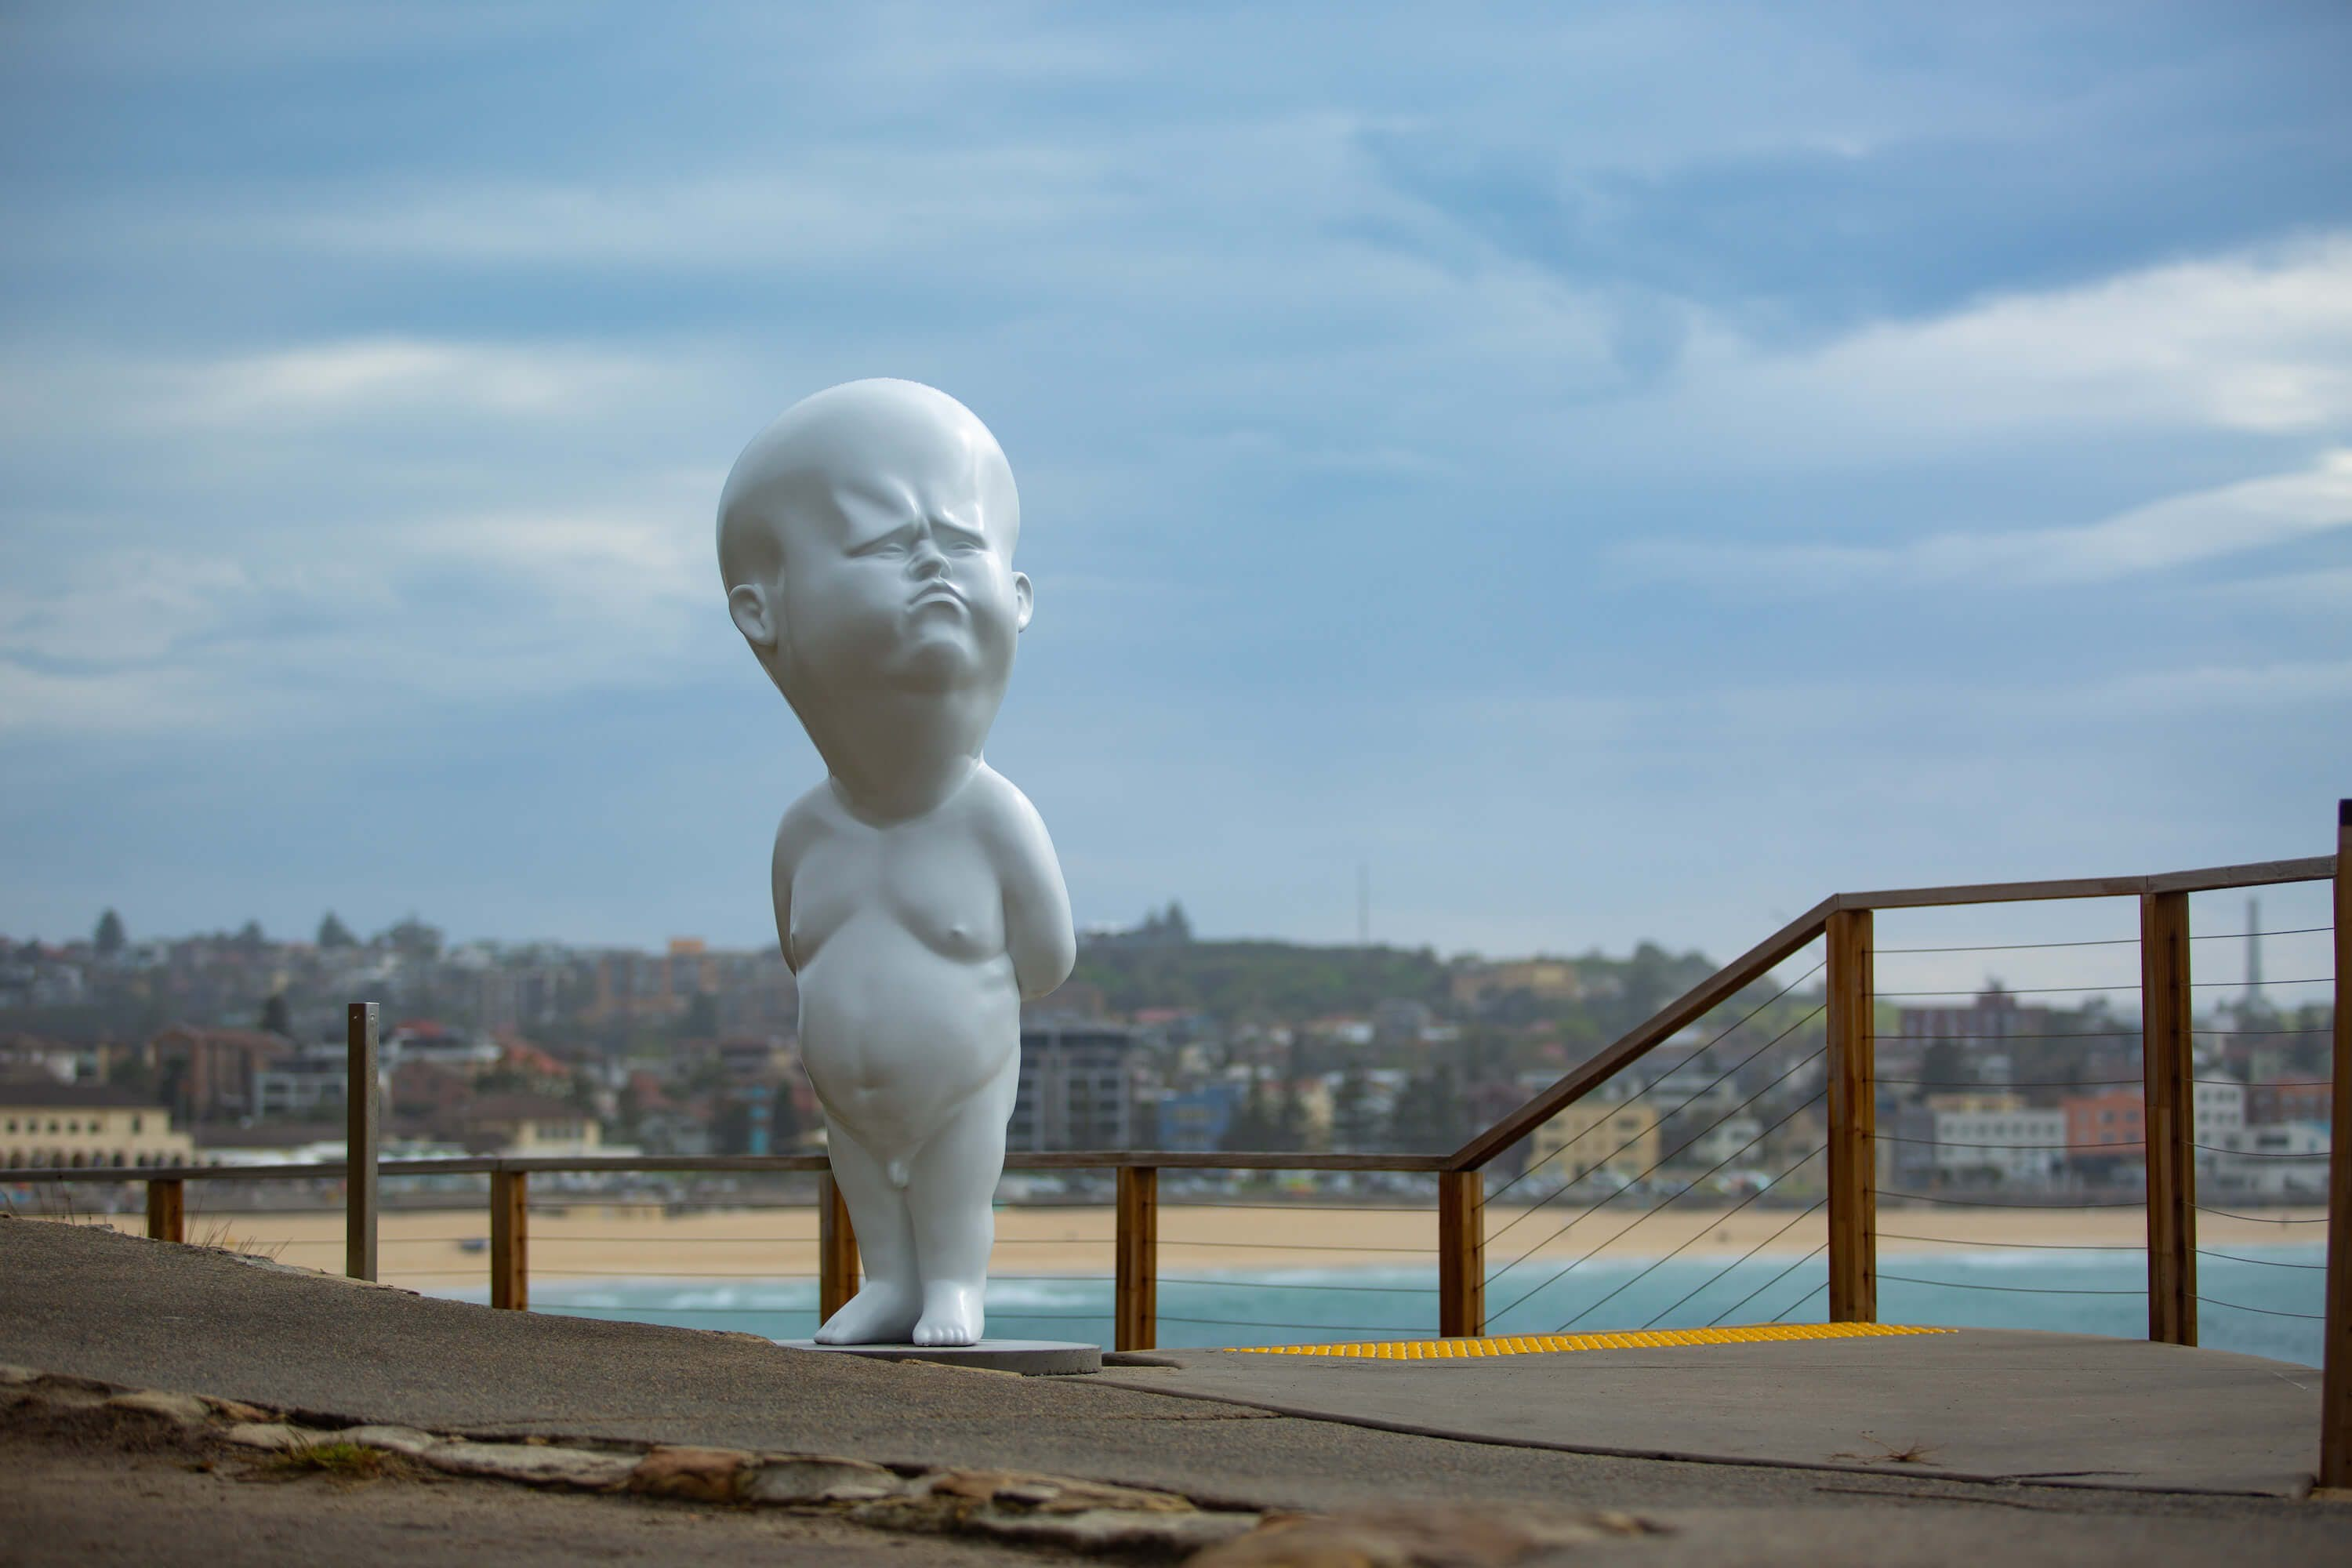 Viktor Freso's work at Sculpture at the Sea. Image by GCarr